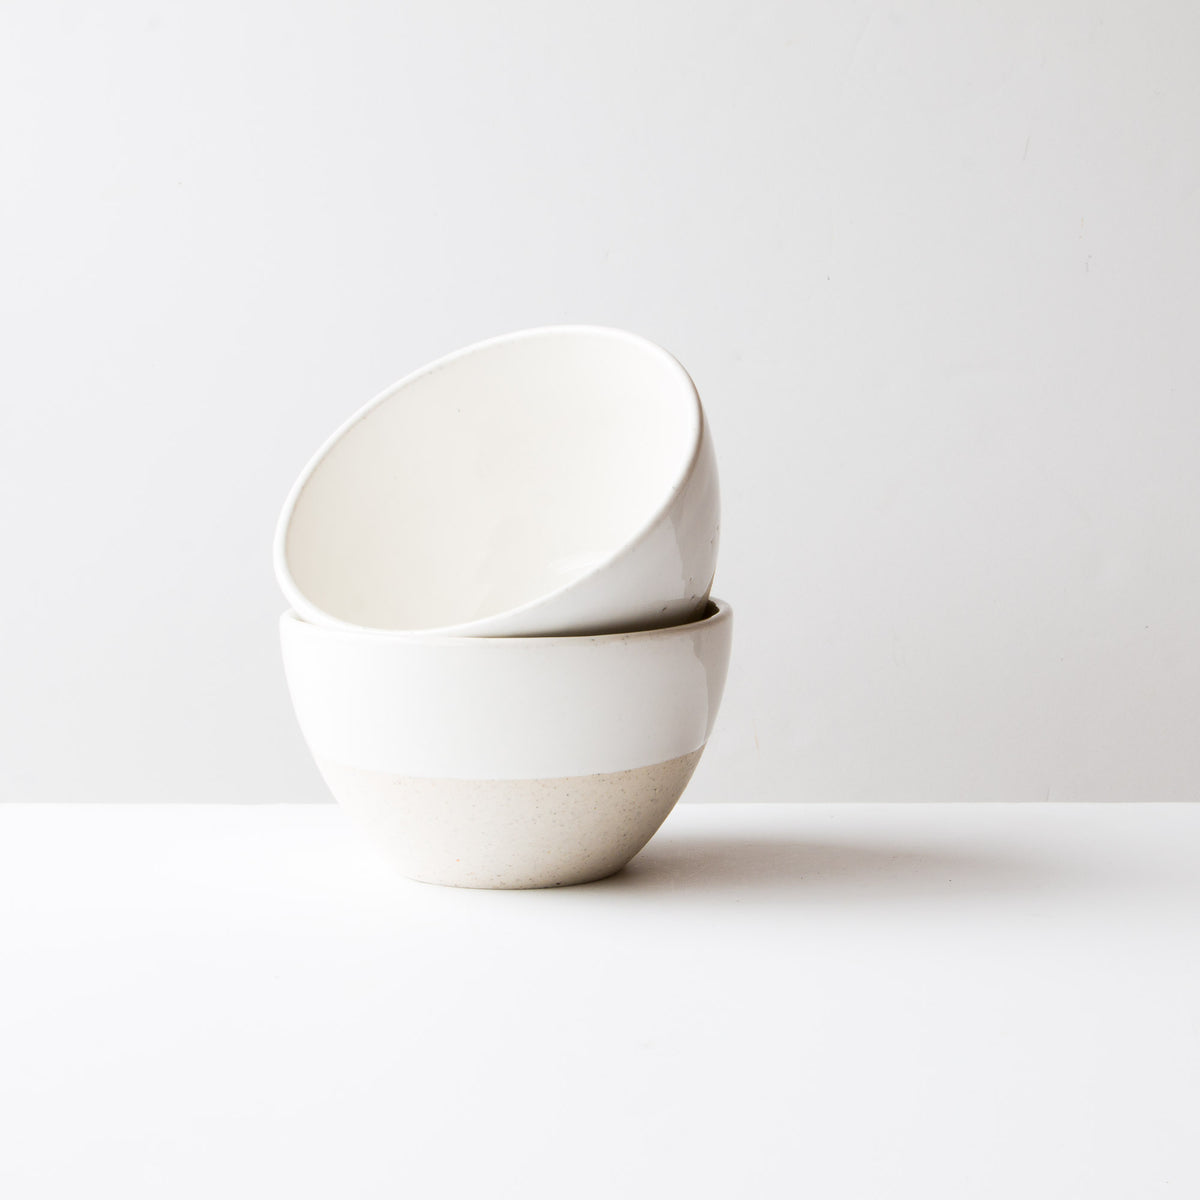 Oatmeal Clay - Soft White Glaze - Large Ceramic Soup Bowls - Handmade in Québec - Sold by Chic & Basta